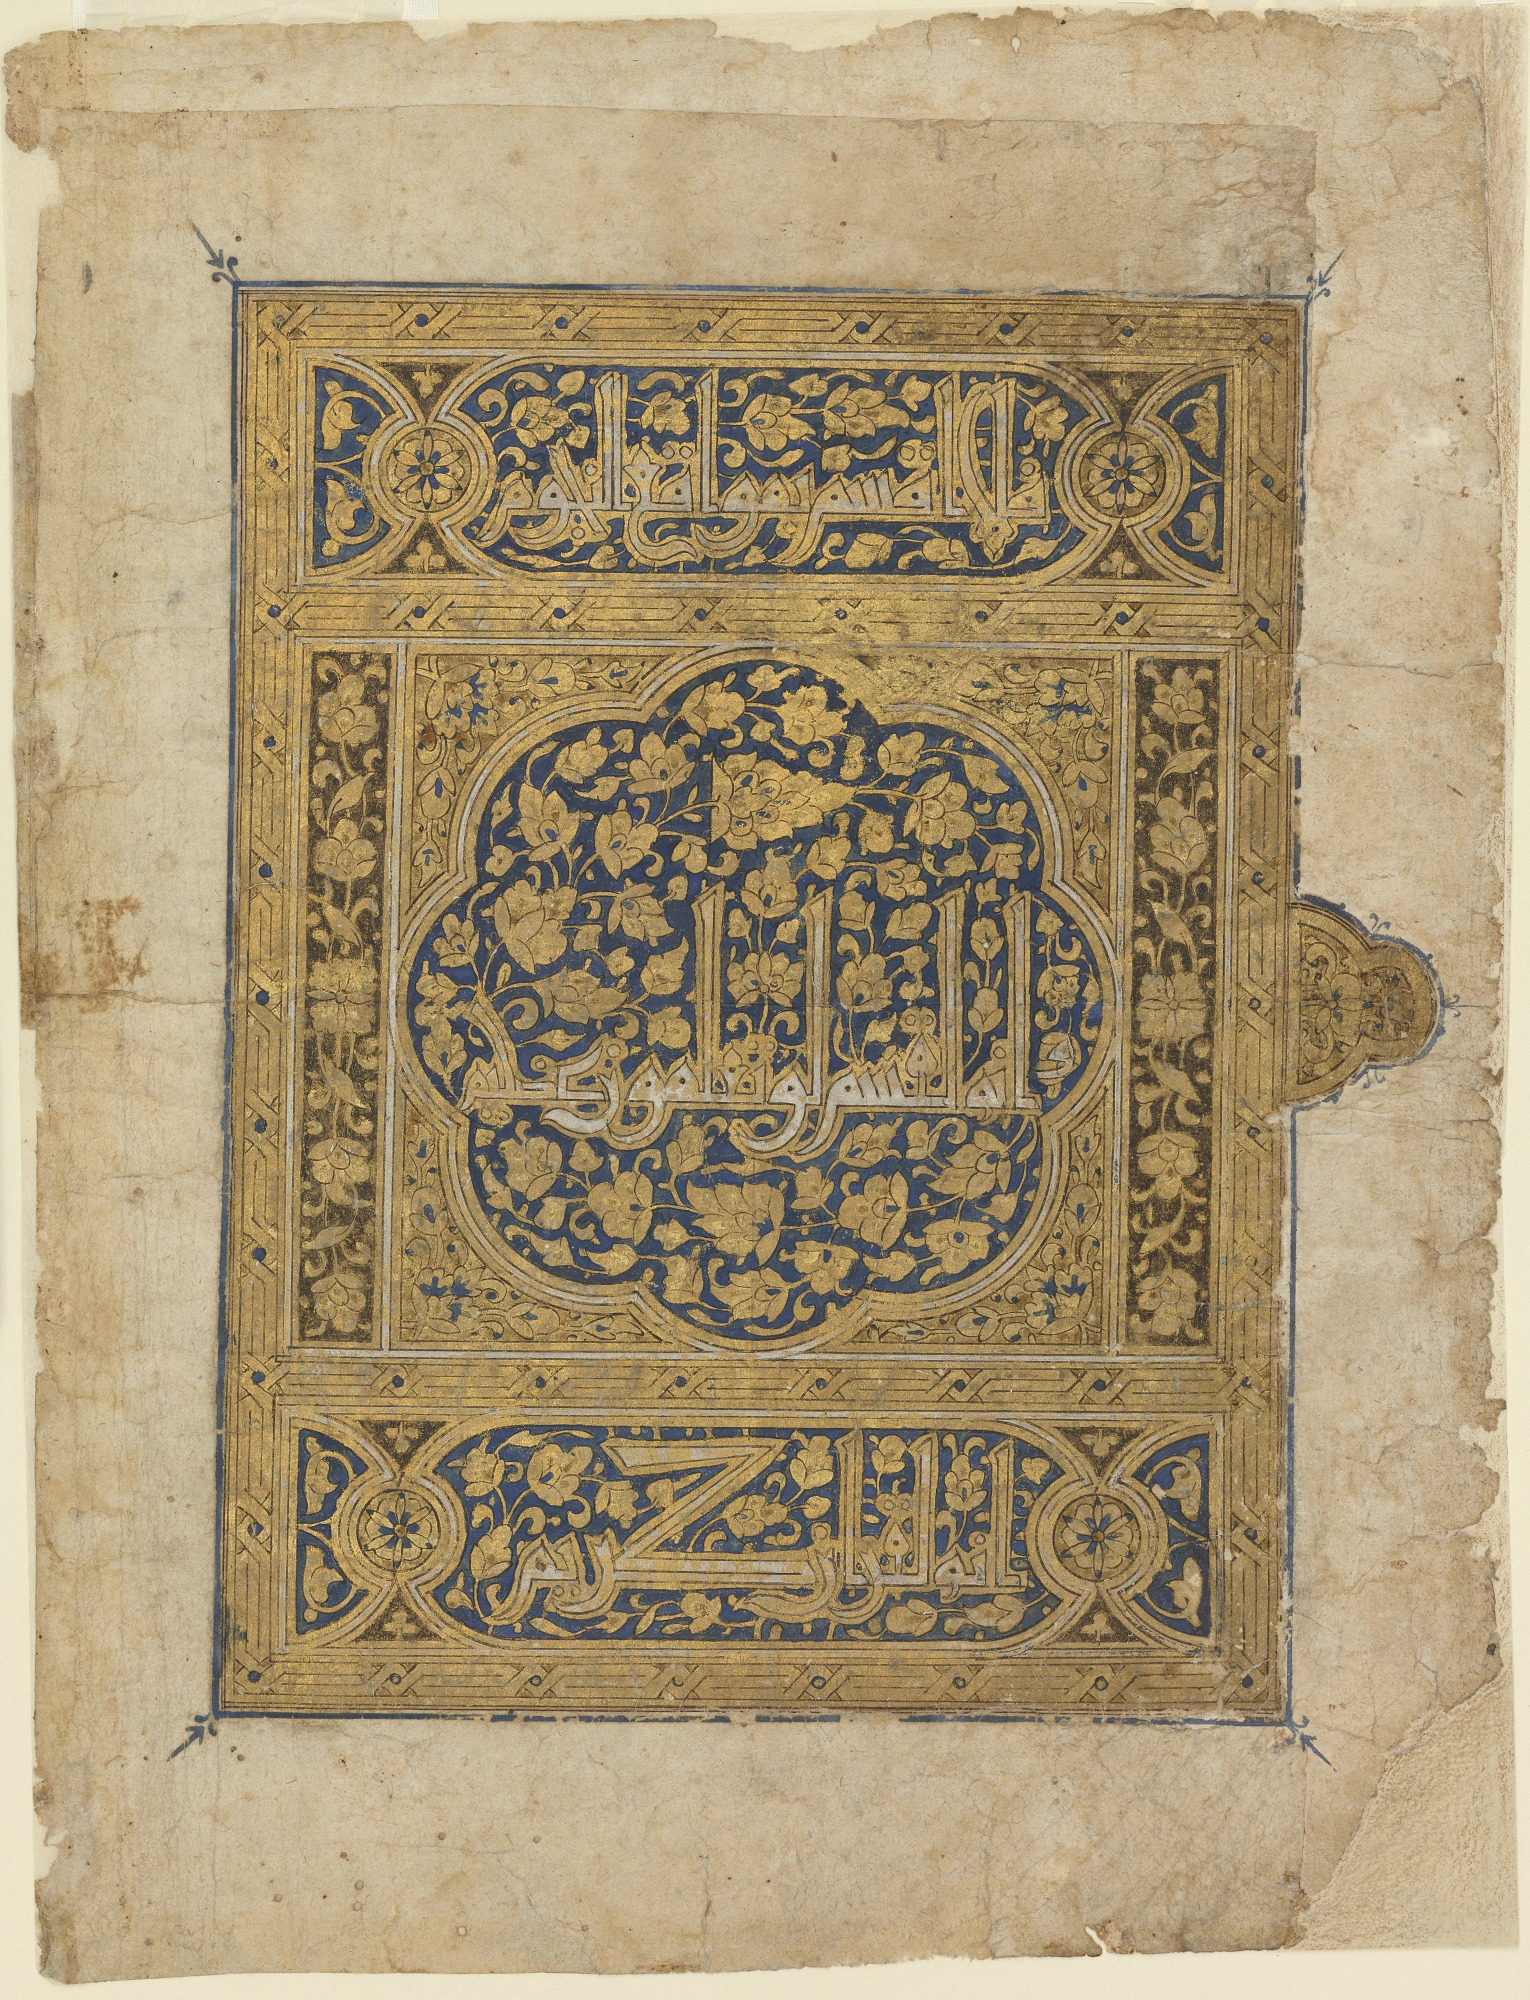 : Folio from a Qur'an, sura 56:75-77